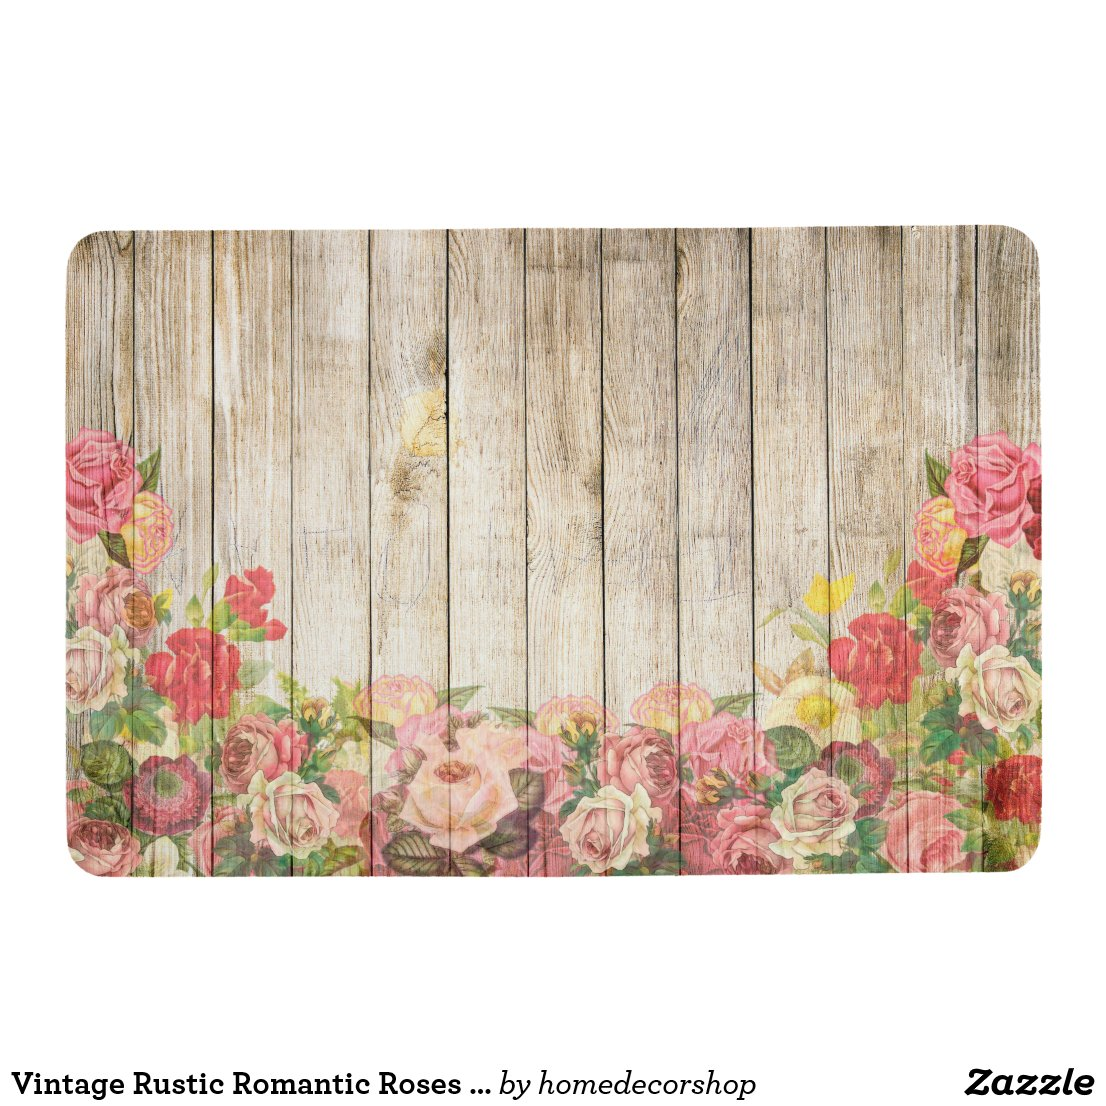 Vintage Rustic Romantic Roses Wood Floor Mat